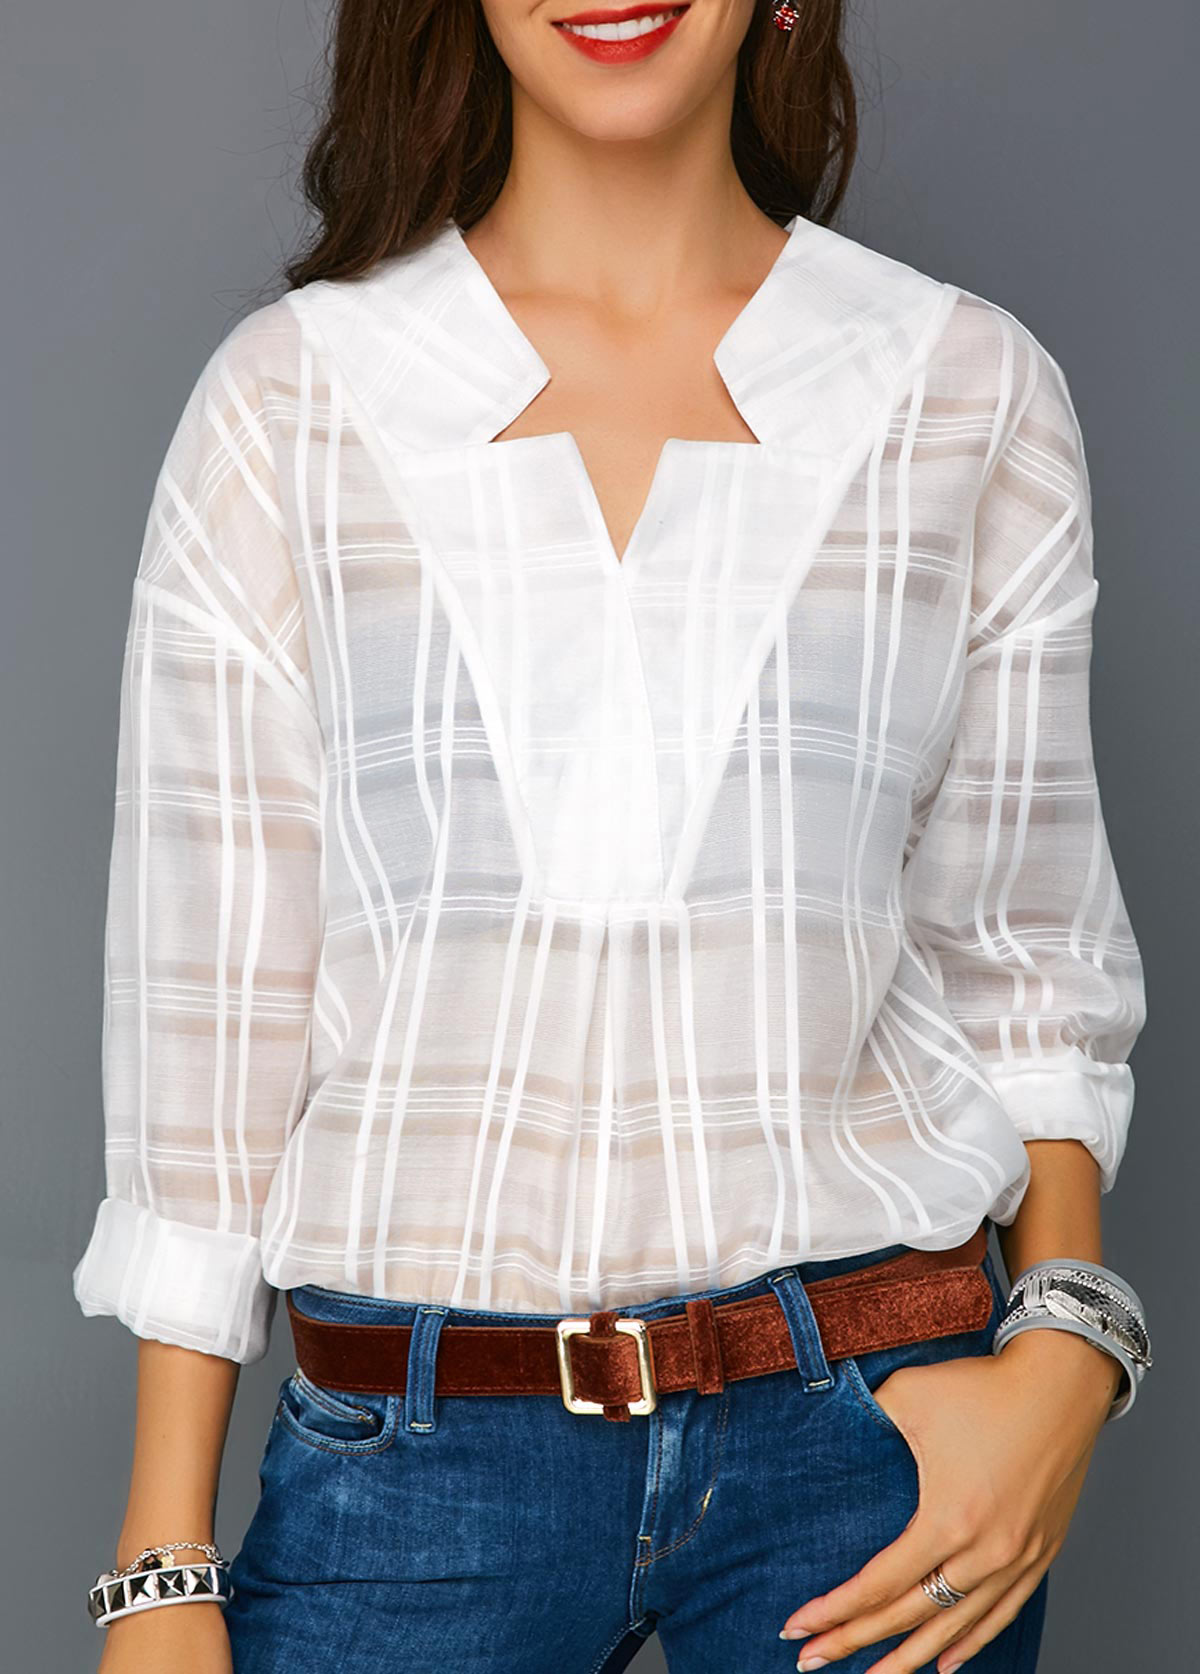 Long Sleeve Curved Hem White Blouse